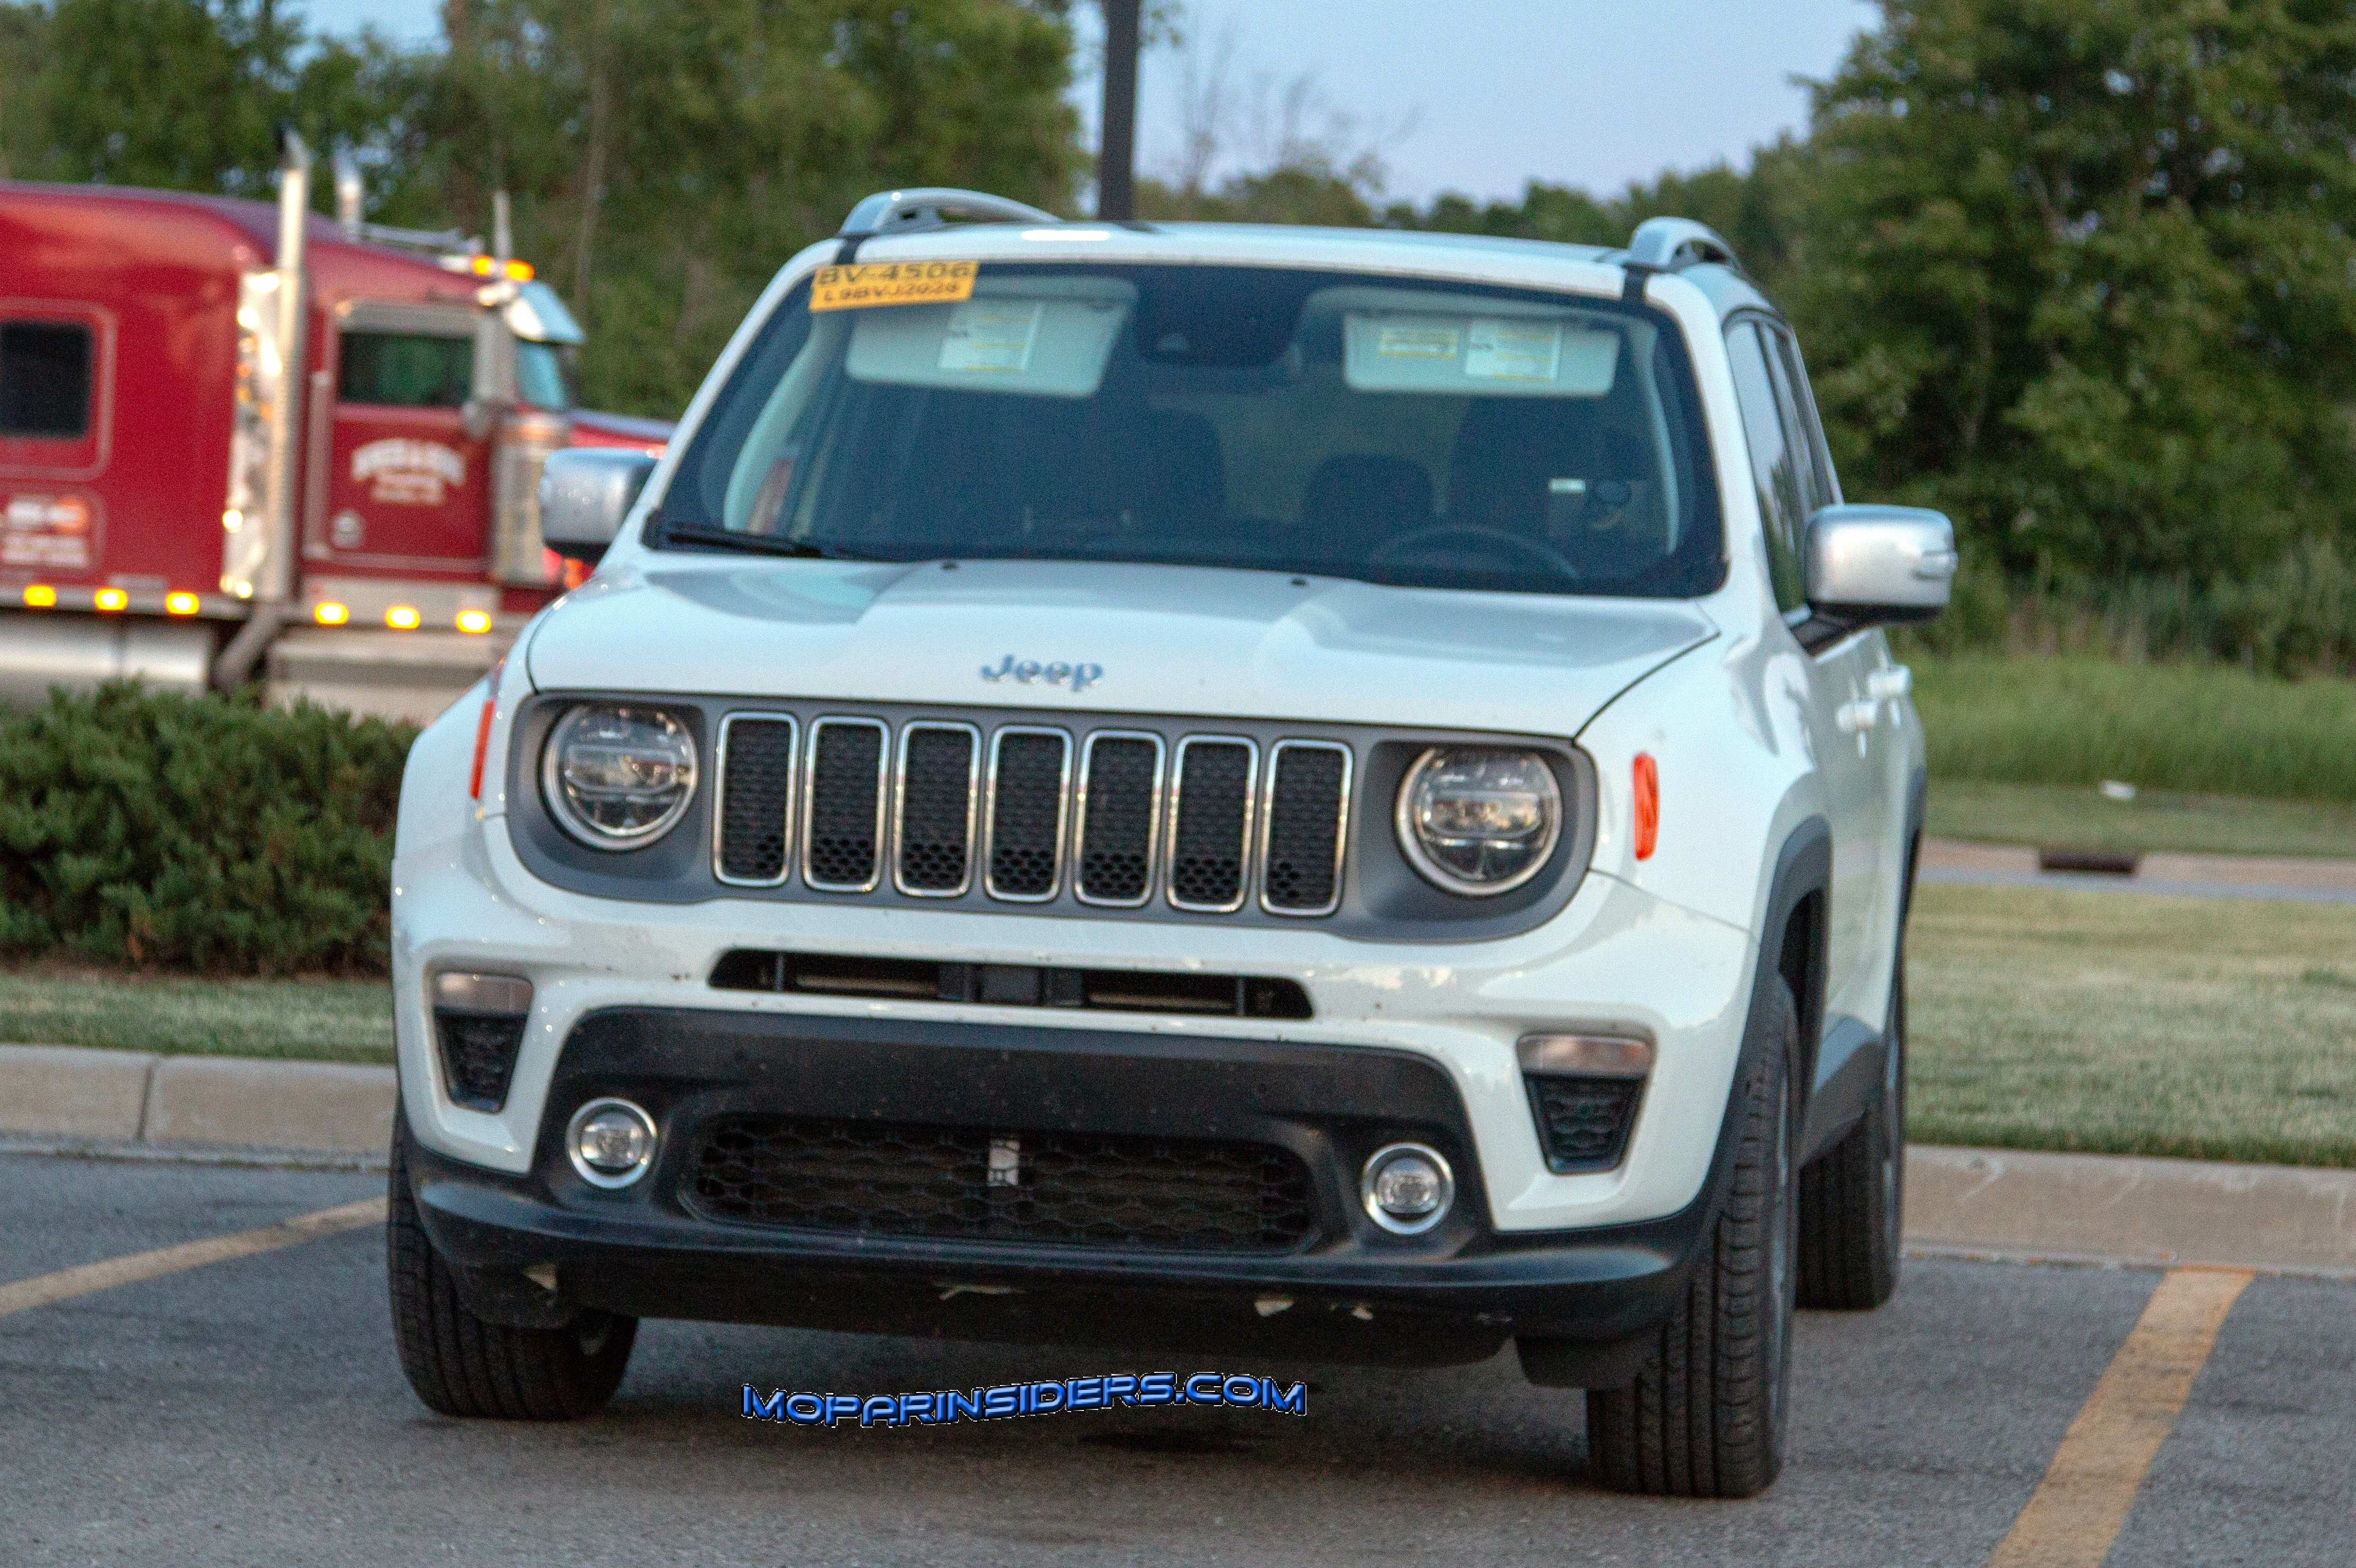 62 Great 2019 Jeep Renegade Review Overview with 2019 Jeep Renegade Review